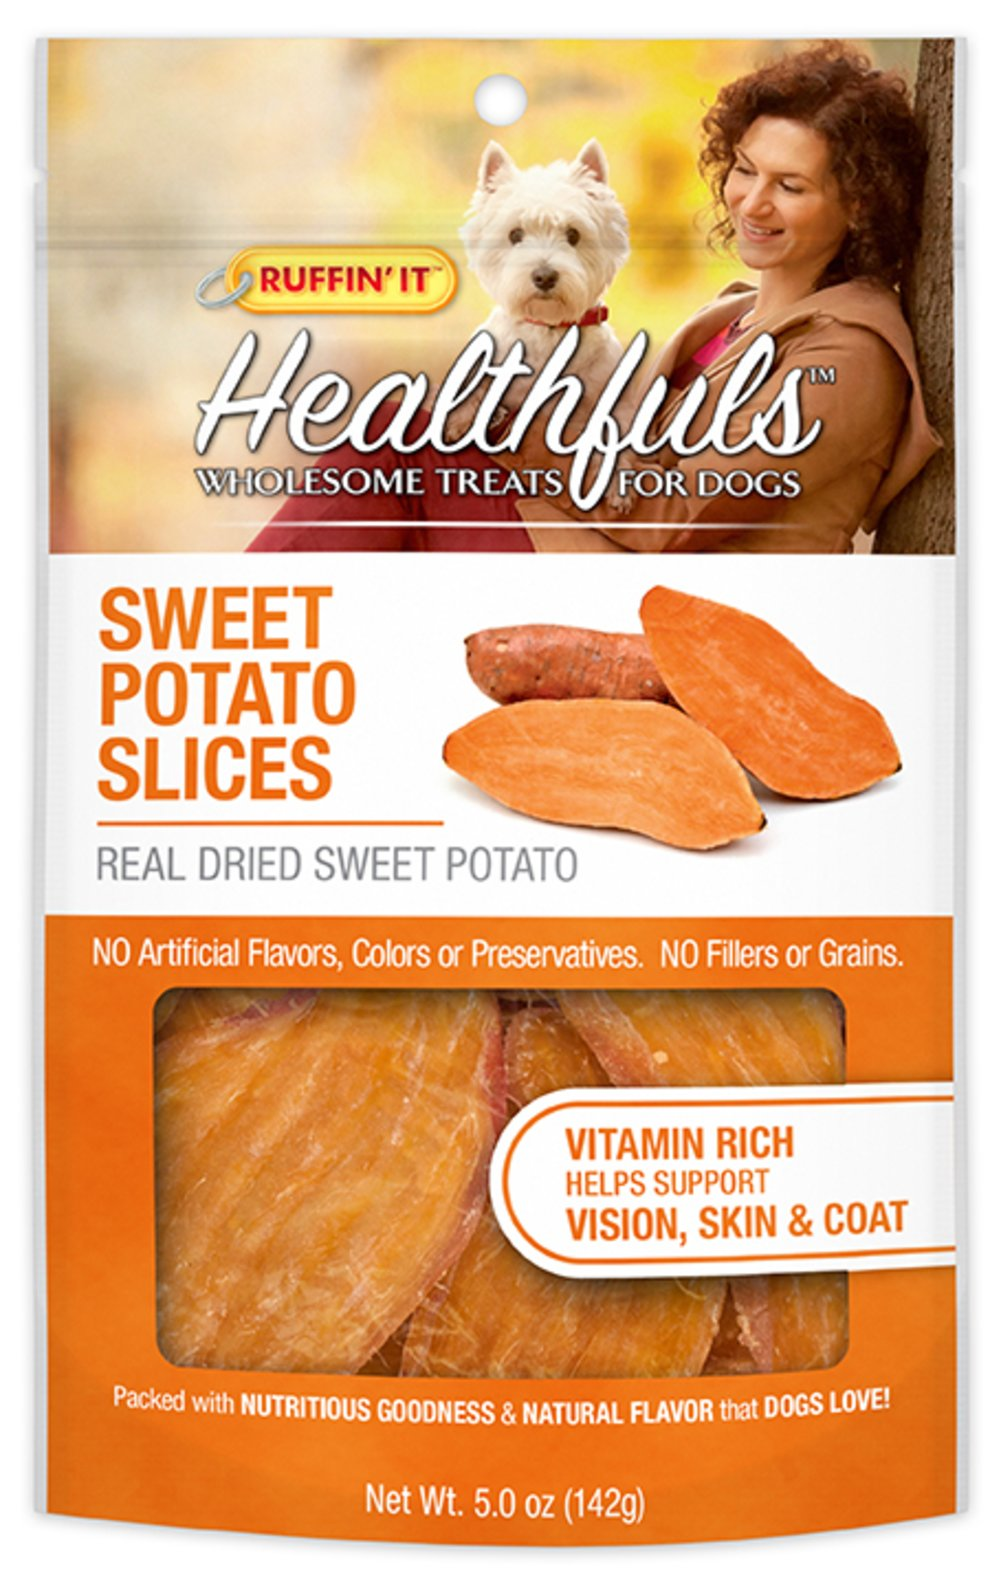 Healthfuls Wholesome Sweet Potato Slices Treats for Dogs Thumbnail Alternate Bottle View